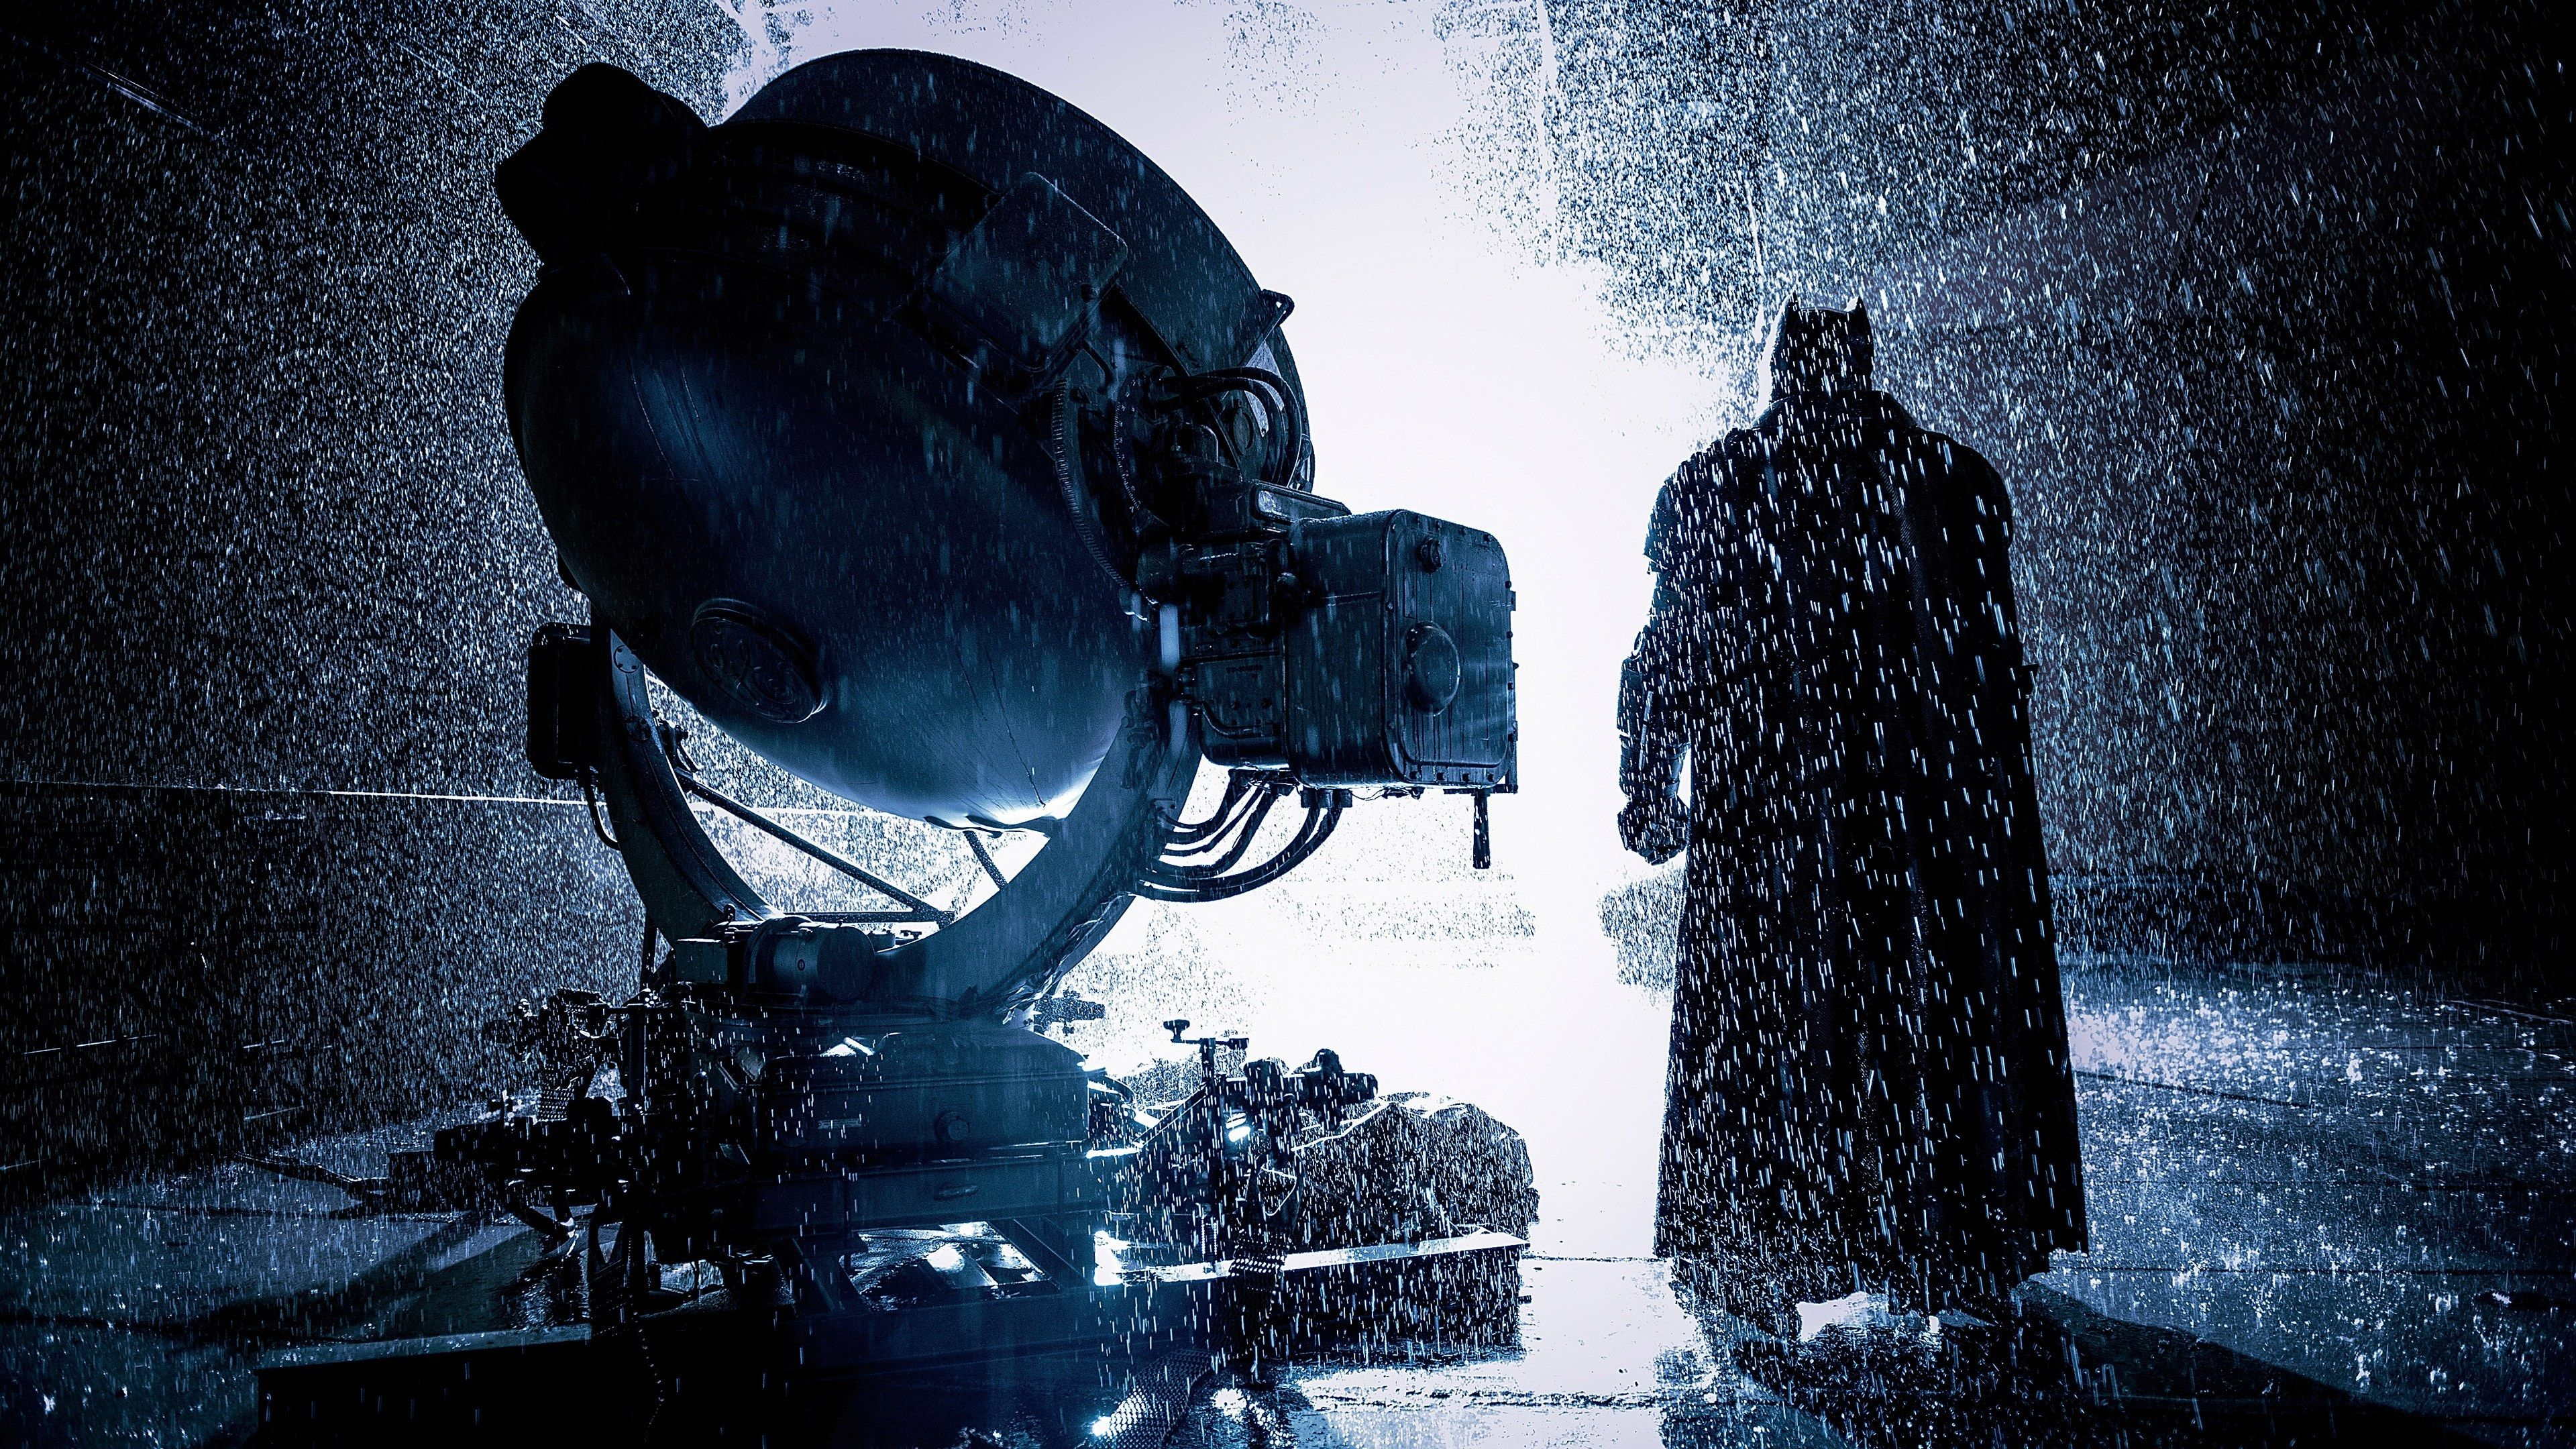 3840x2160 Batman Vs Superman 4k Download Free Wallpaper Hd